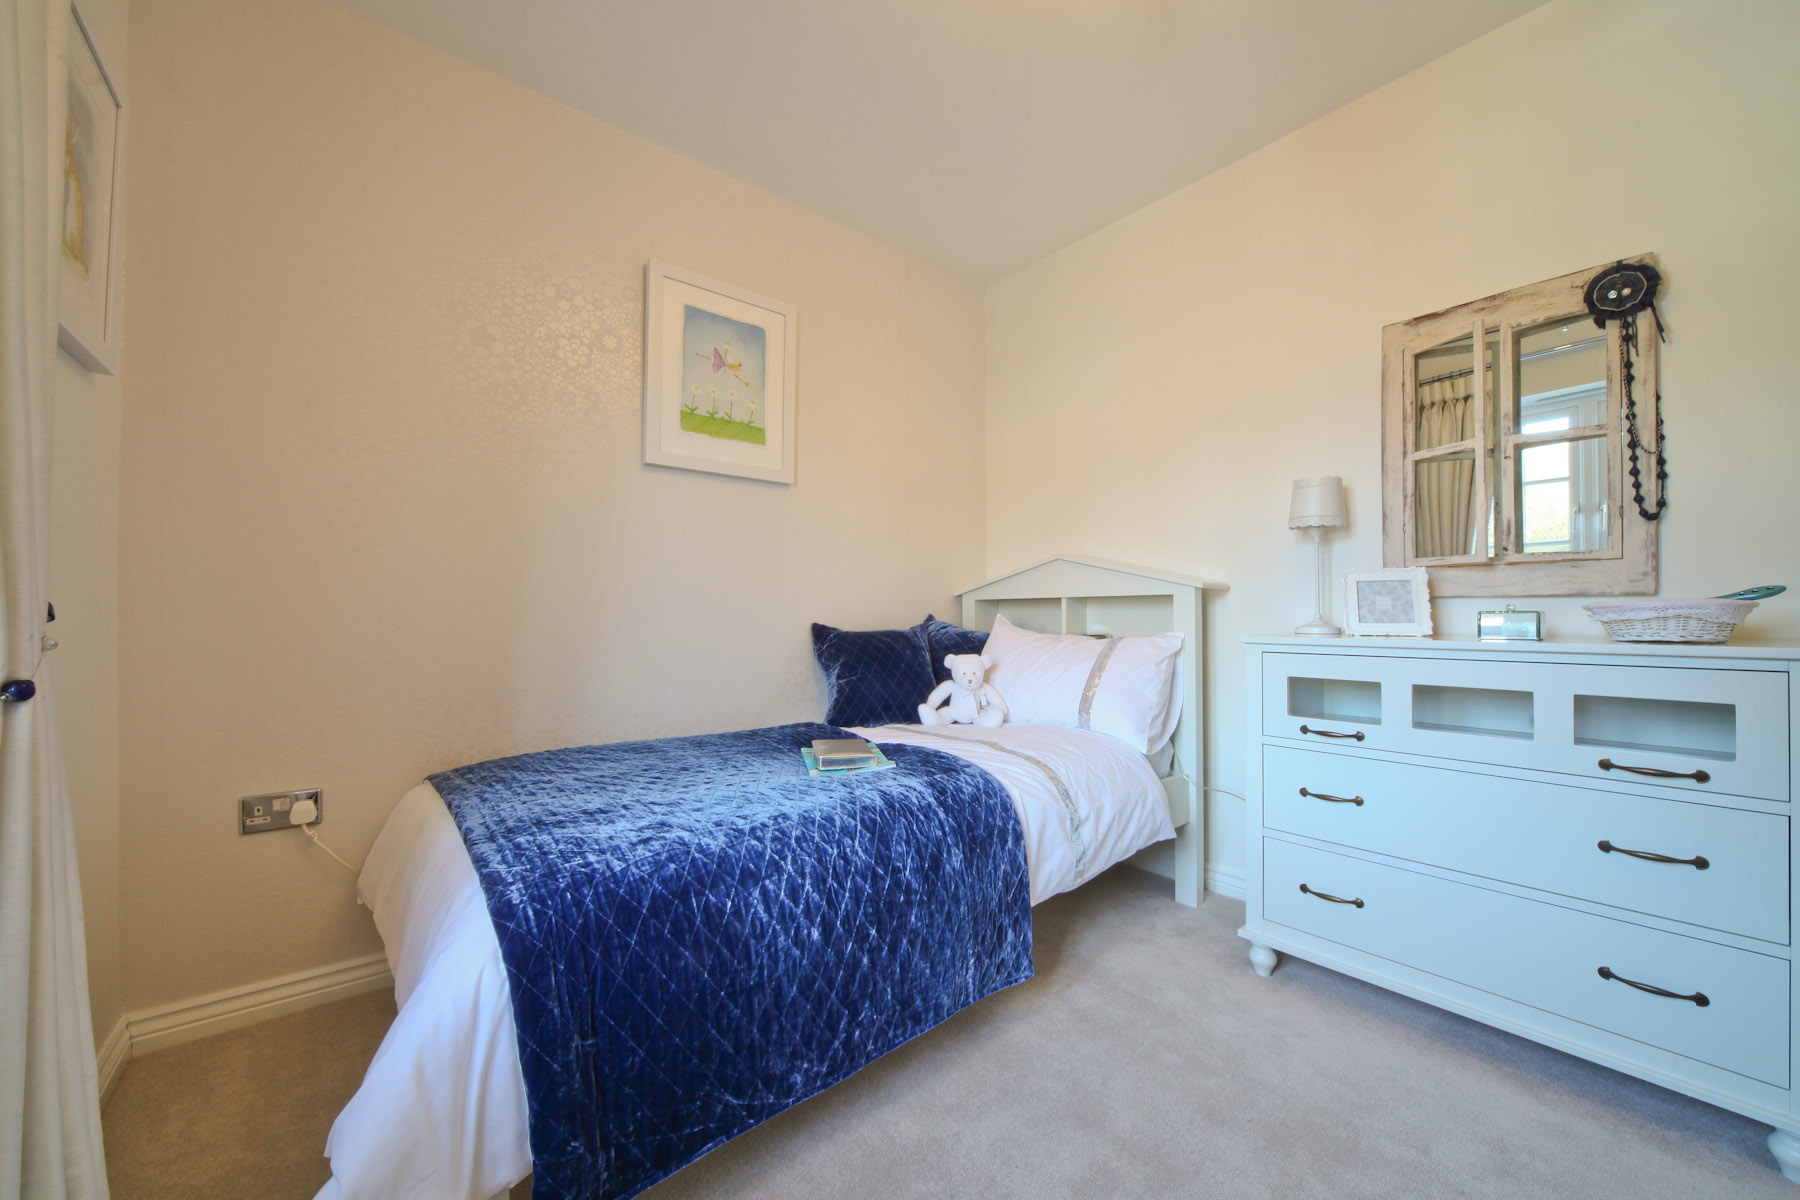 Taylor Wimpey typical 4th bedroom 2